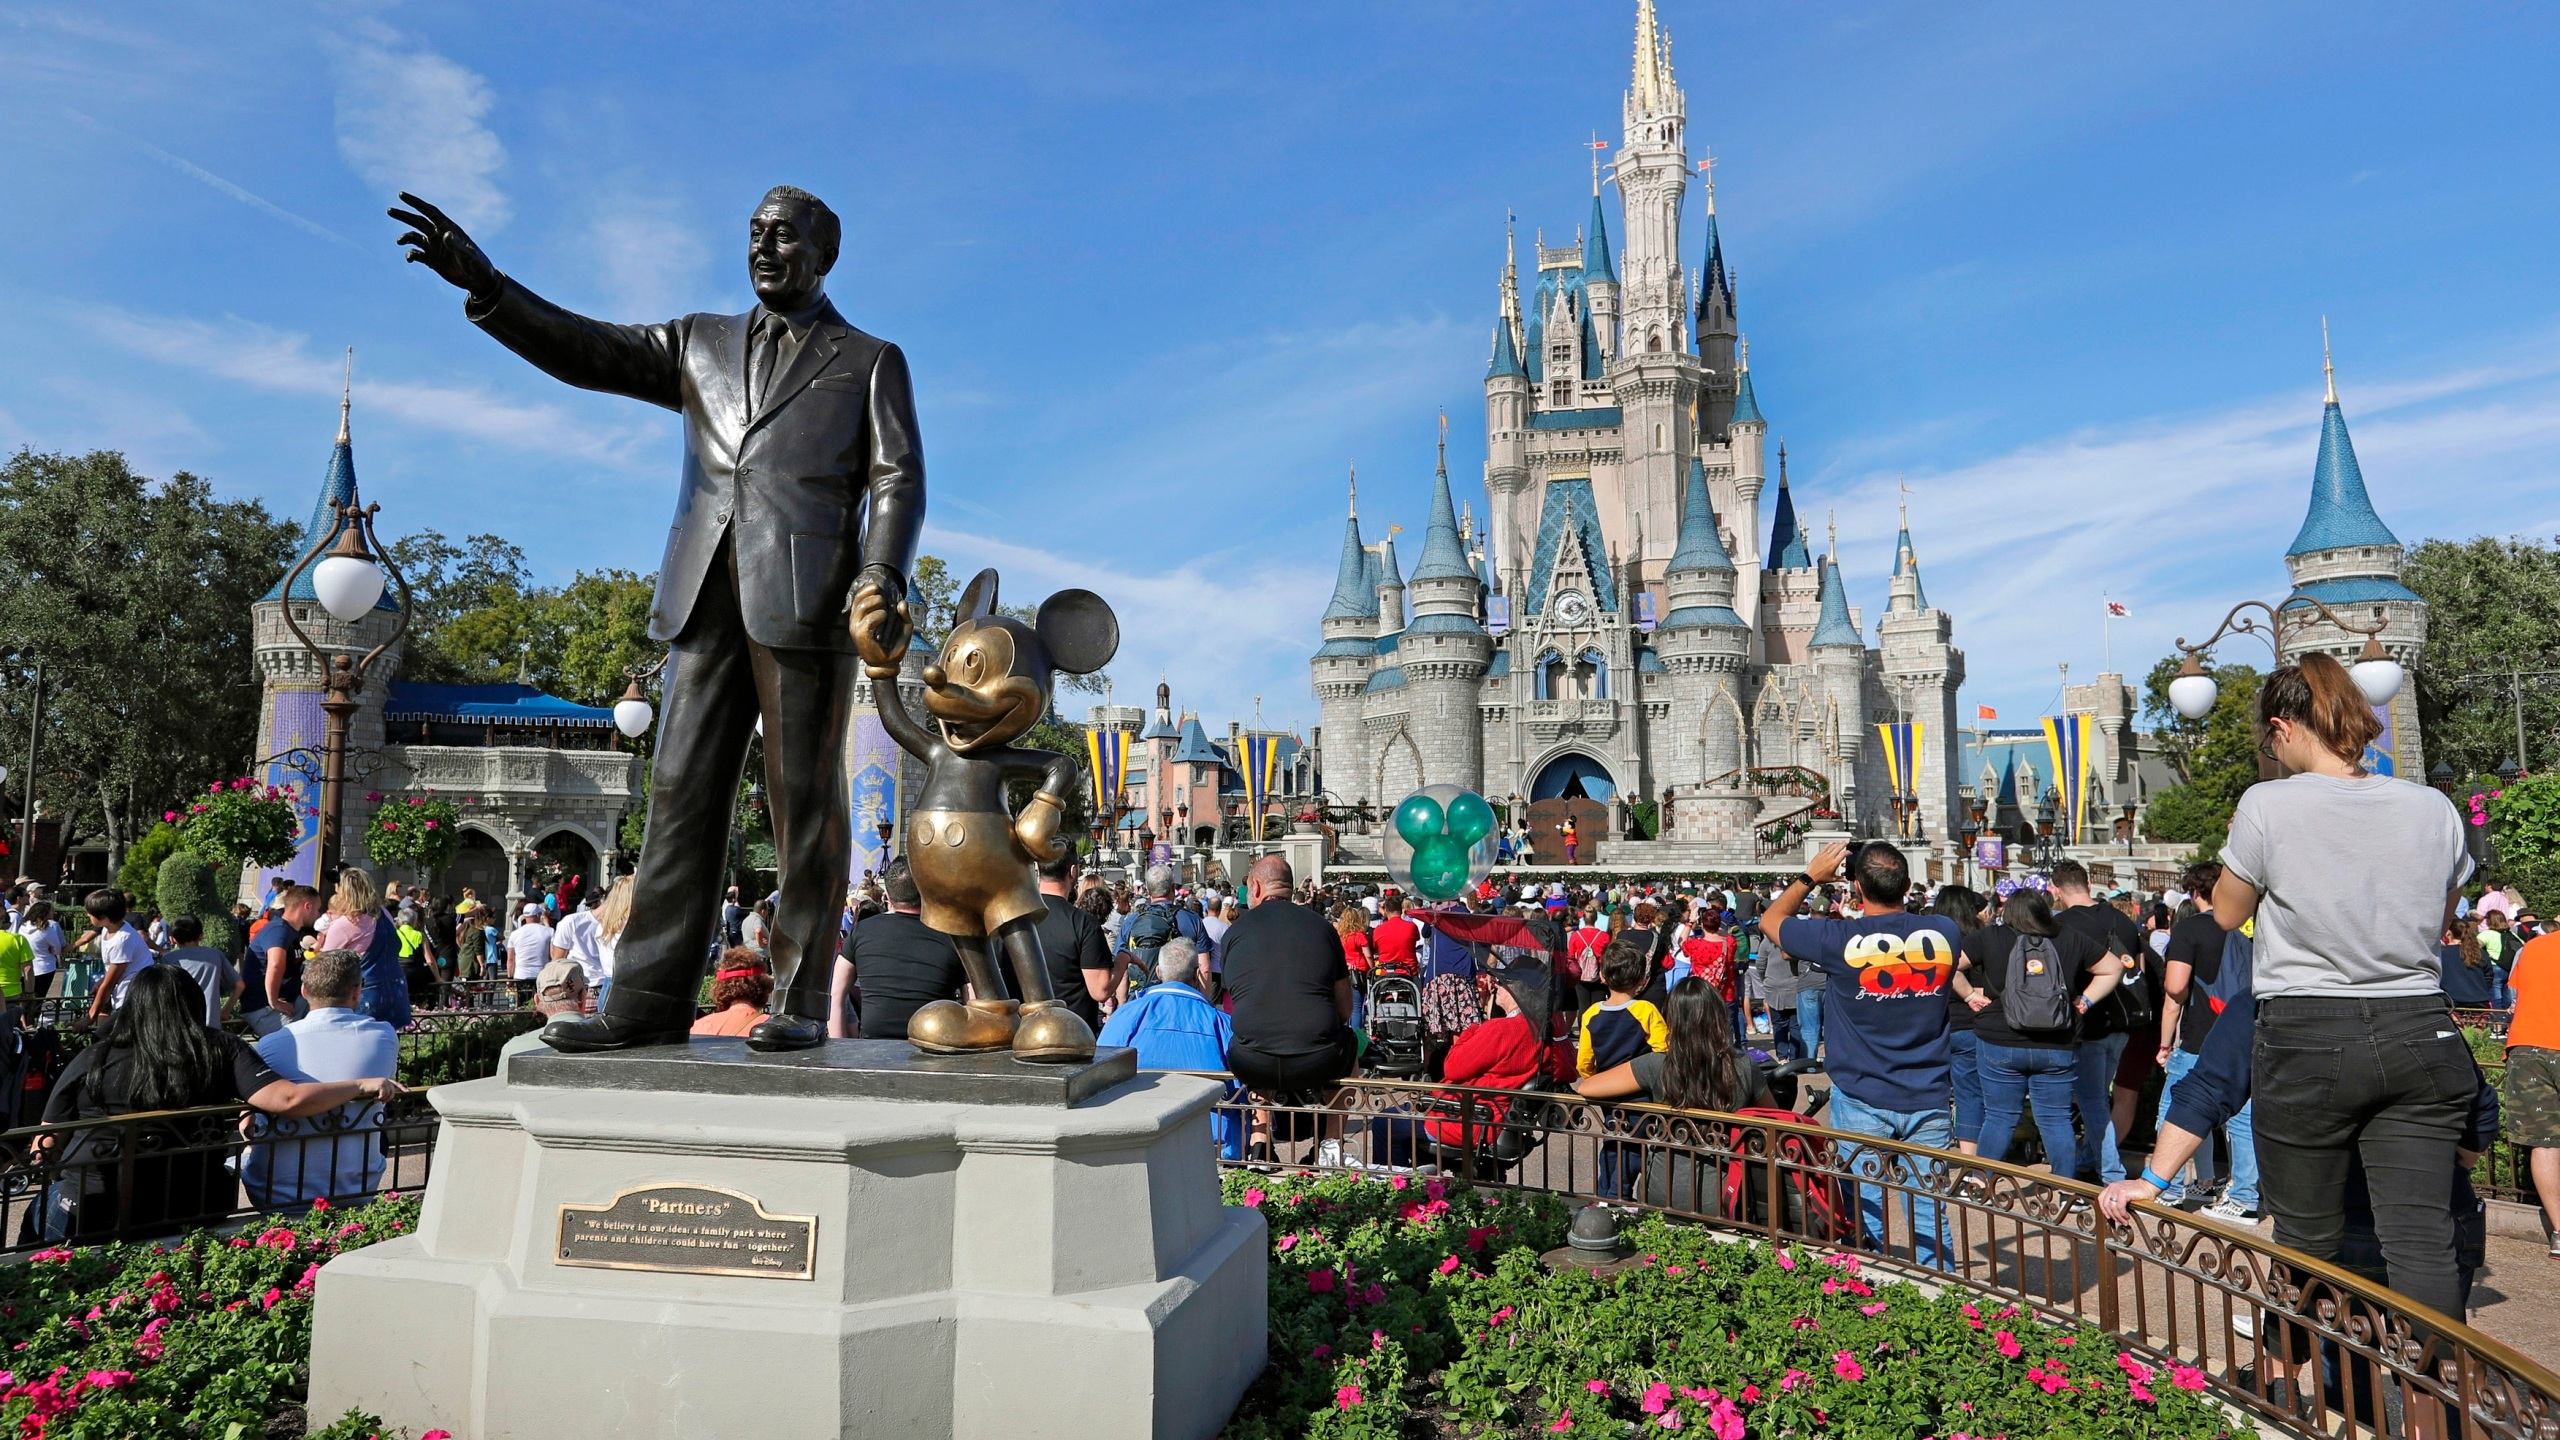 In this Jan. 9, 2019 photo, guests watch a show near a statue of Walt Disney and Micky Mouse in front of the Cinderella Castle at the Magic Kingdom at Walt Disney World in Florida.(AP Photo/John Raoux, File)